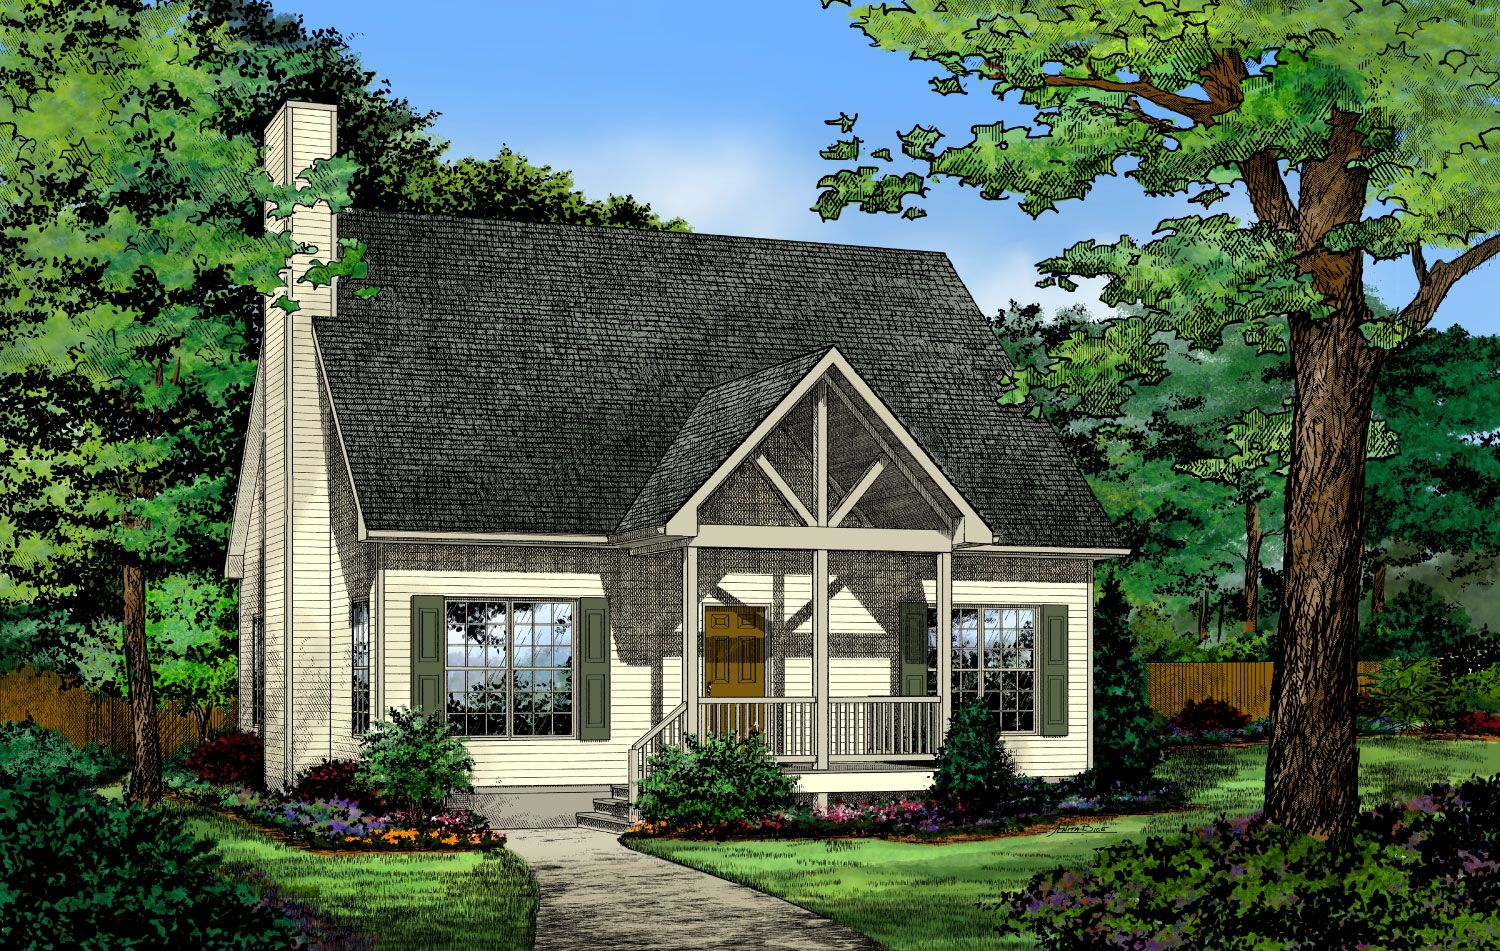 Single Family for Sale at Build On Your Lot - Franklin - Timberhill A 335 Np & L Loop Franklin, North Carolina 28734 United States